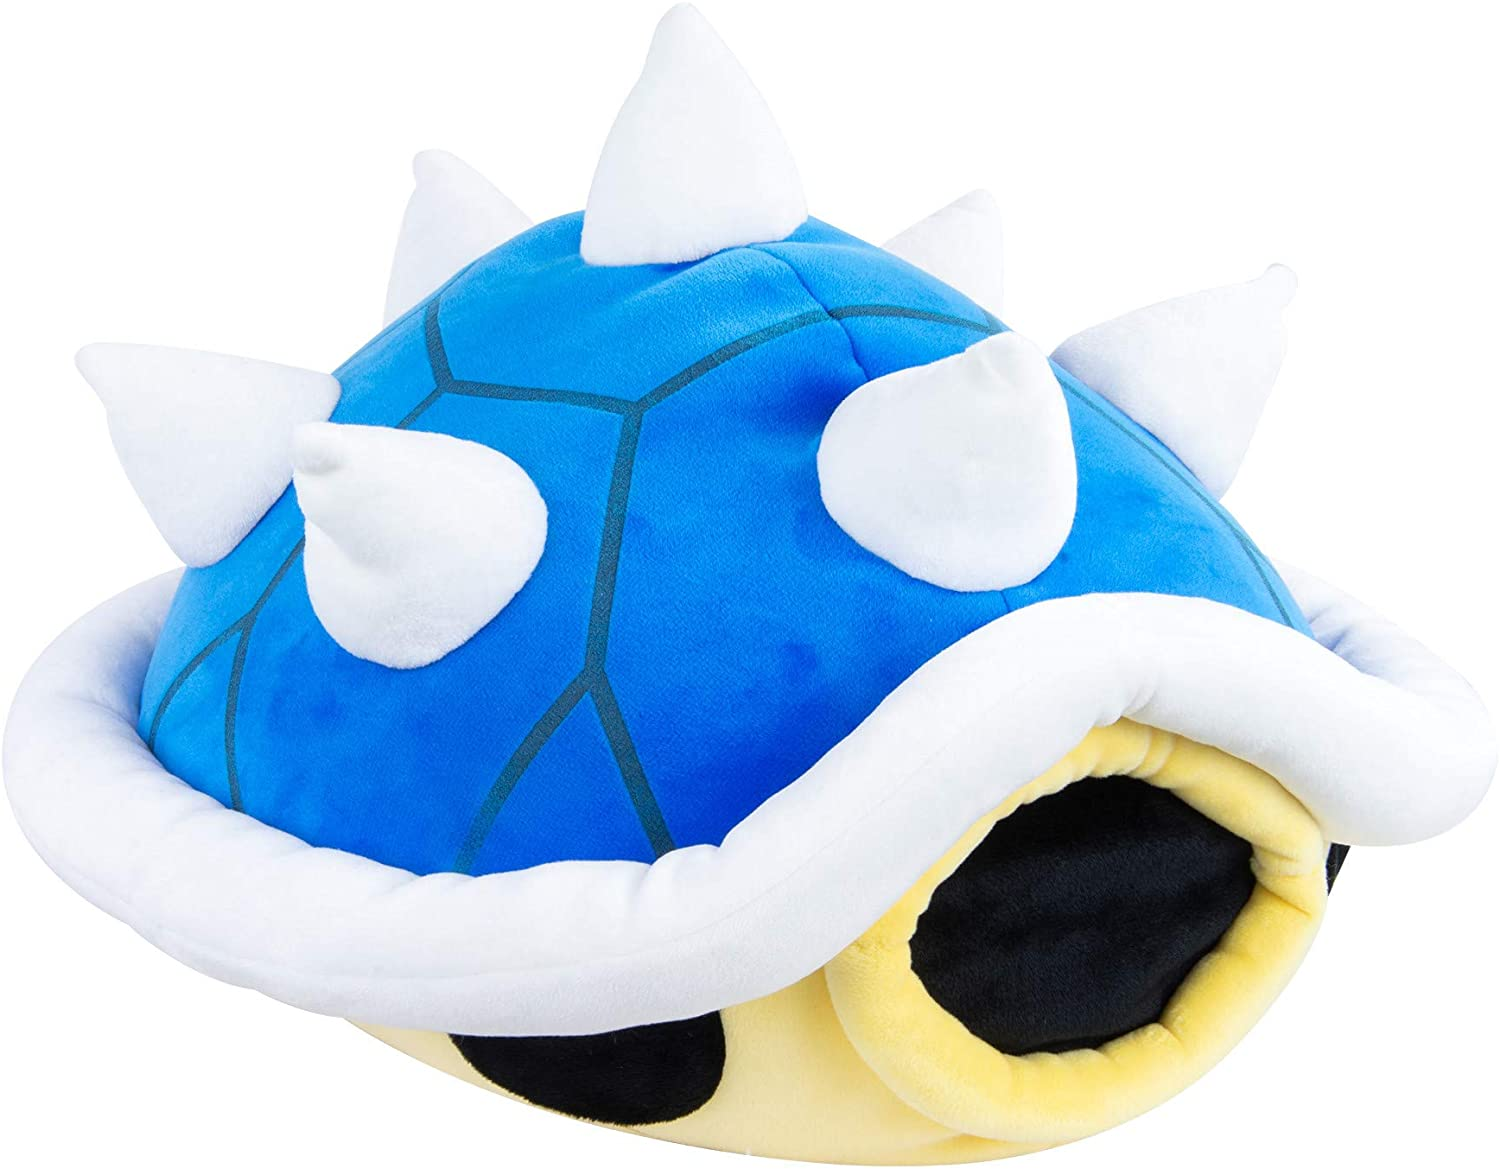 Club Mocchi Mocchi Nintendo Mario Kart Blue Shell Plush Stuffed Toy, Multicolor, Junior